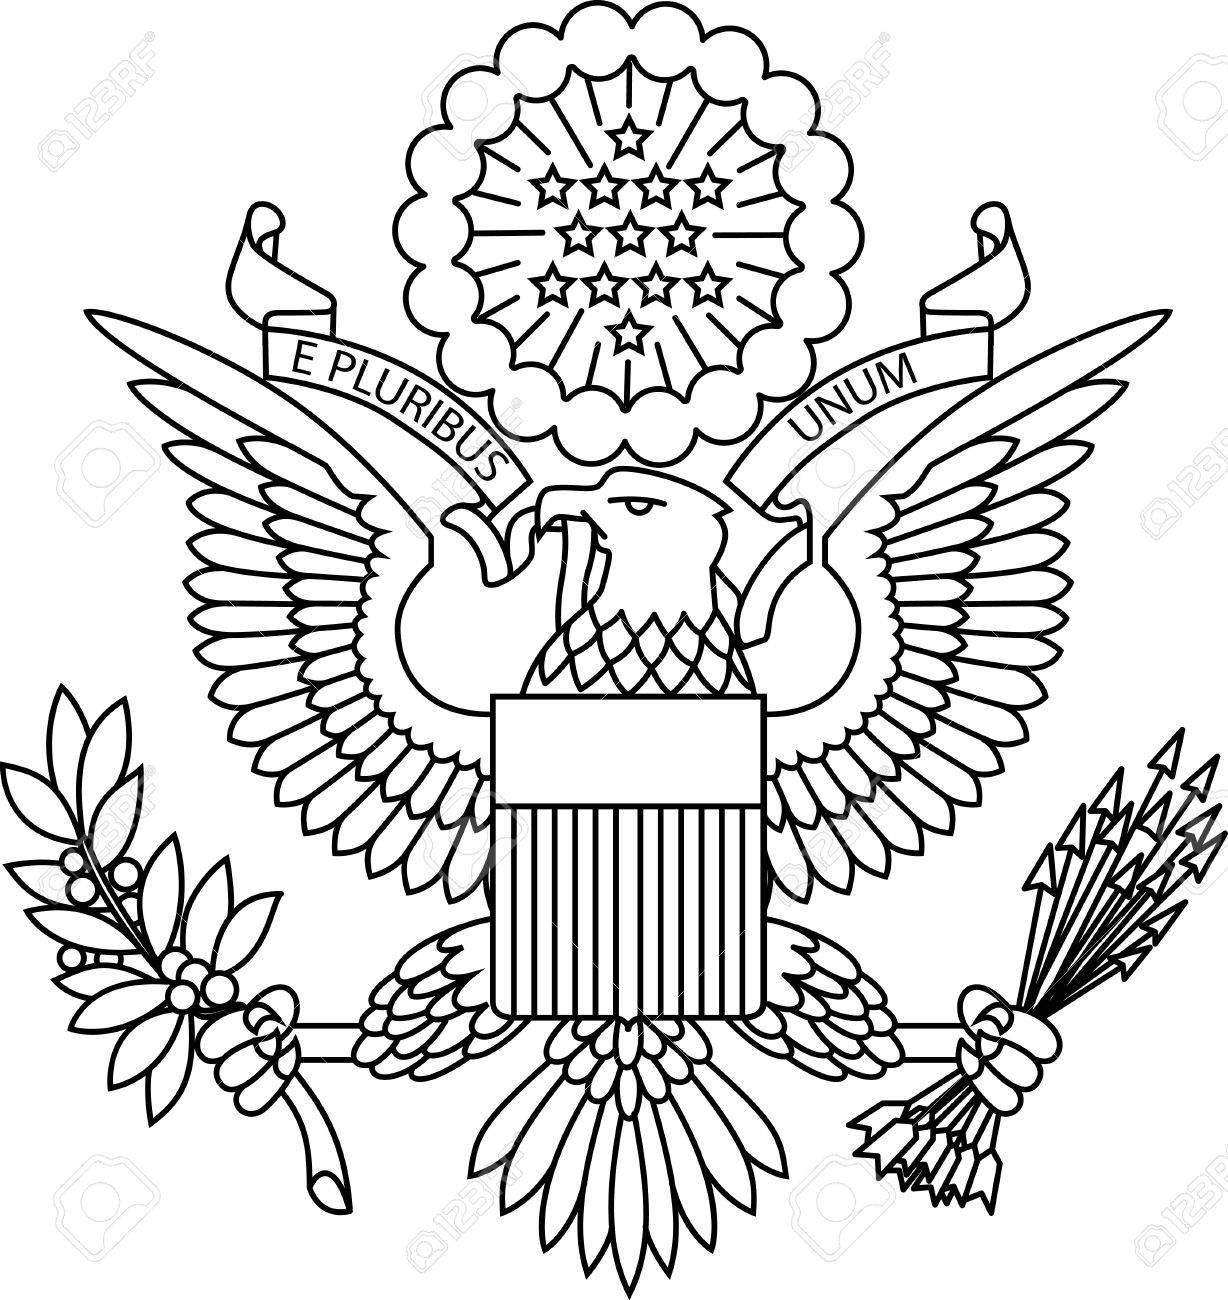 Image result for passport seal clipart free.